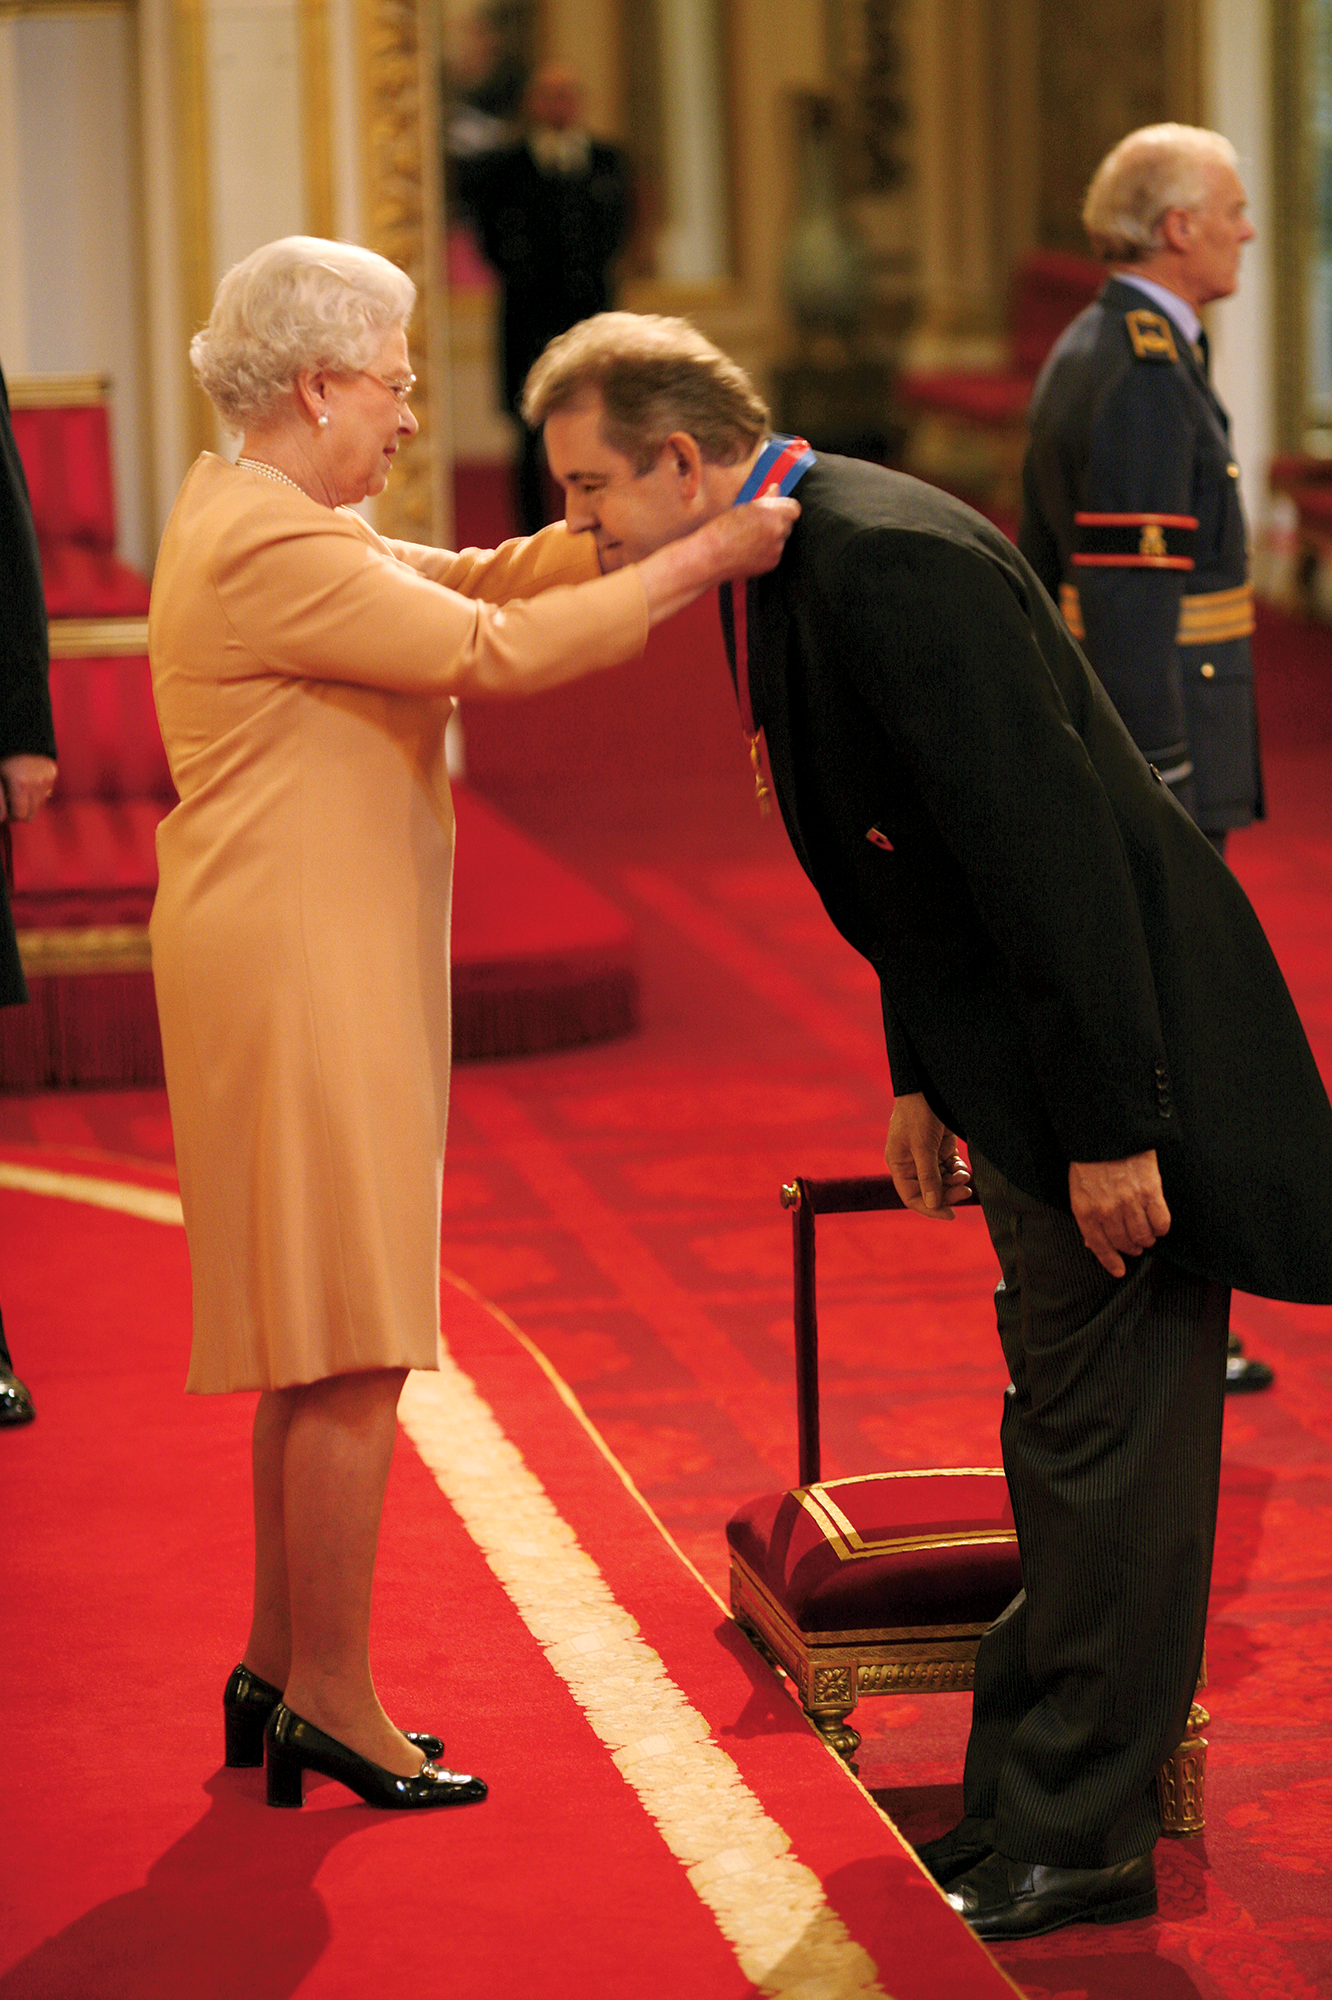 Sir It Up: Darroch gets knighted by the queen at Buckingham Palace in 2008. Photograph by Anthony Devlin/PA Images via Getty Images.